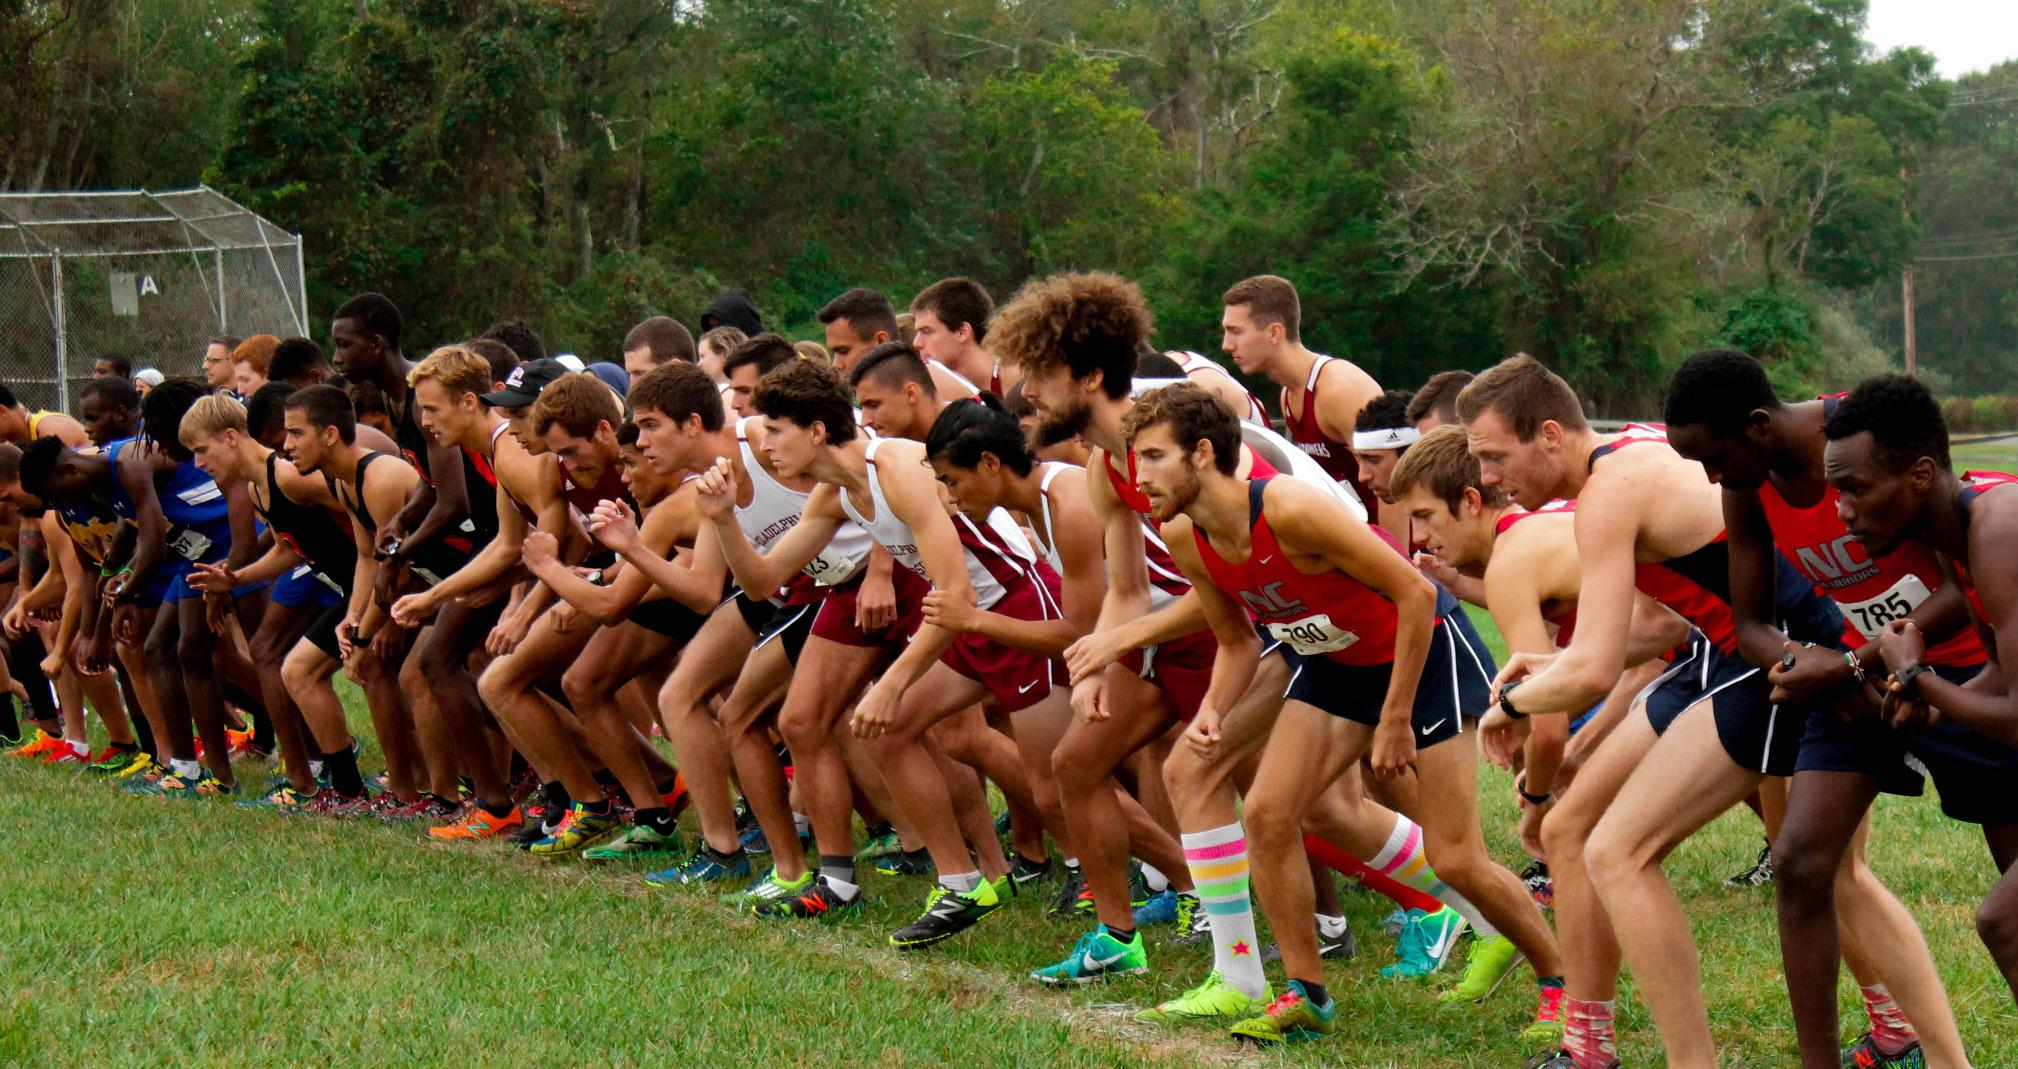 Men's Cross Country finishes 4th at Stockton University Invite